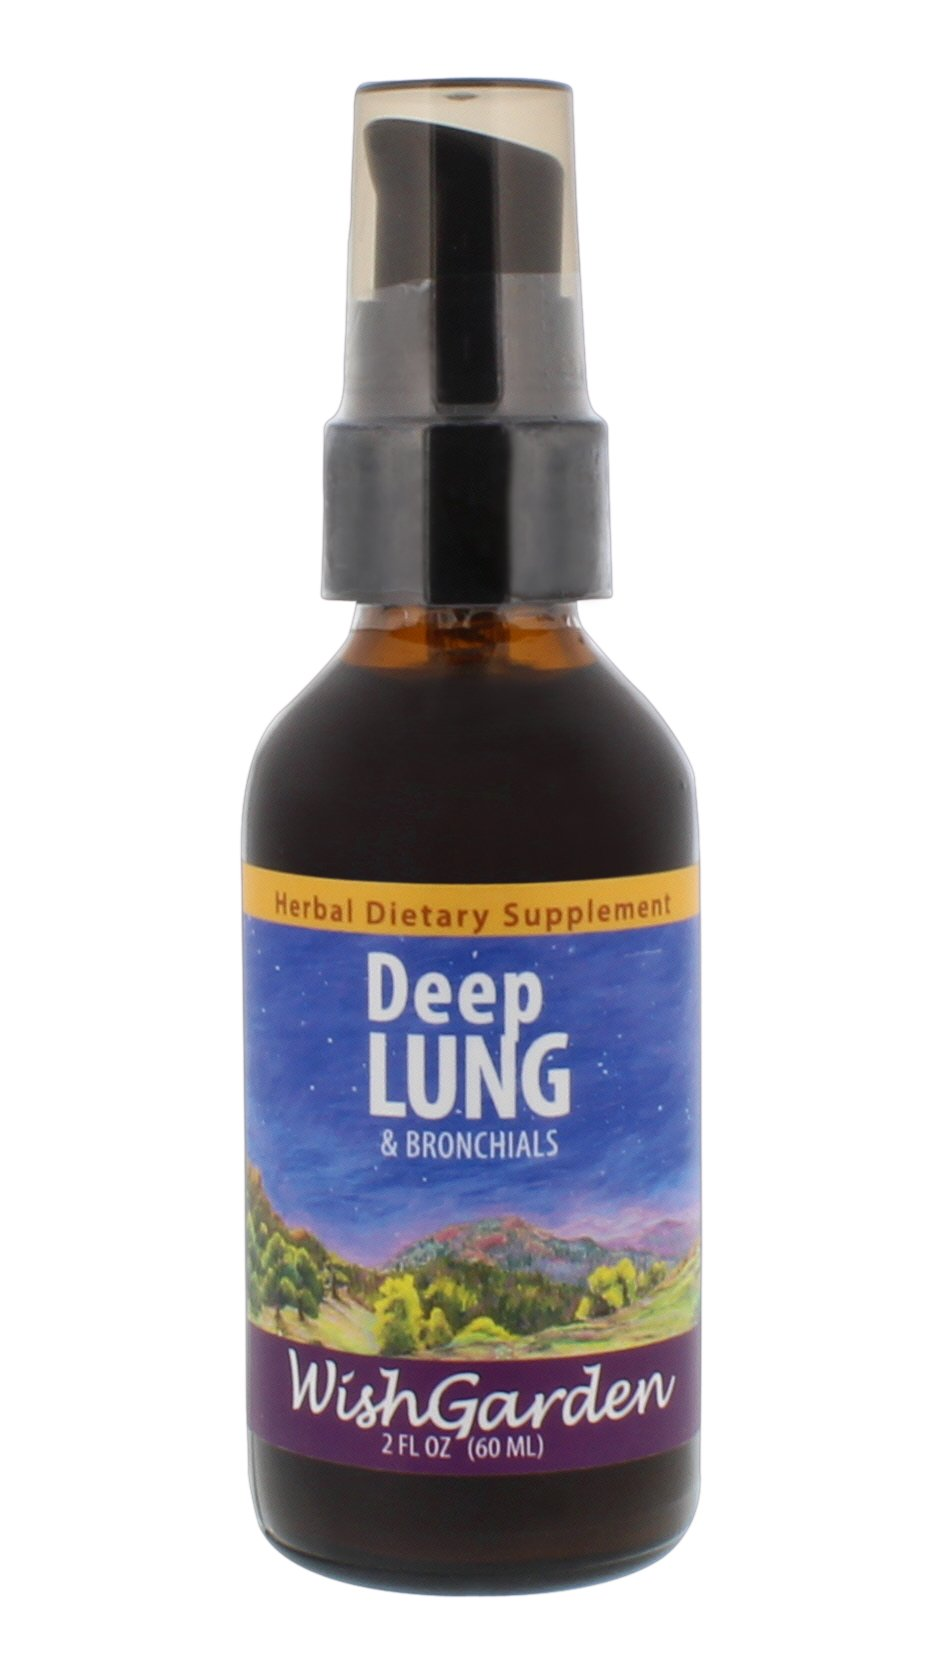 Cheapest amazon herbs - Wishgarden Herbs Deep Lung Organic Herbal Supplement For Healthy Strong Lungs Promotes